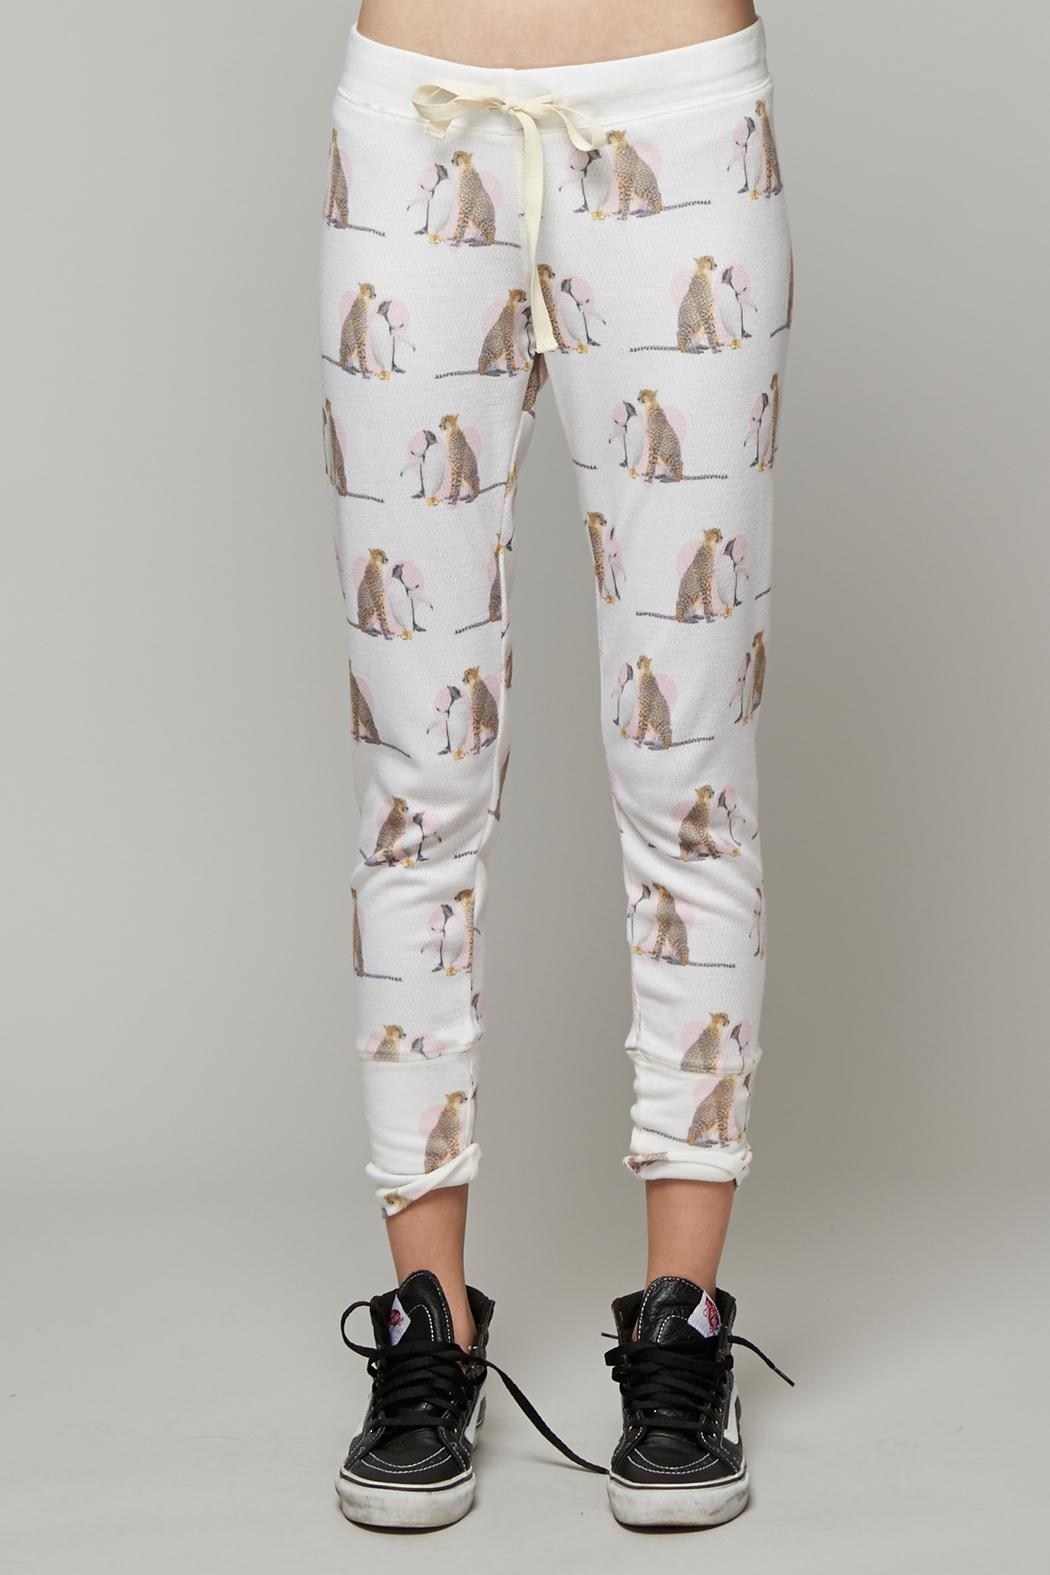 All Things Fabulous Lovers Thermal Pants - Main Image